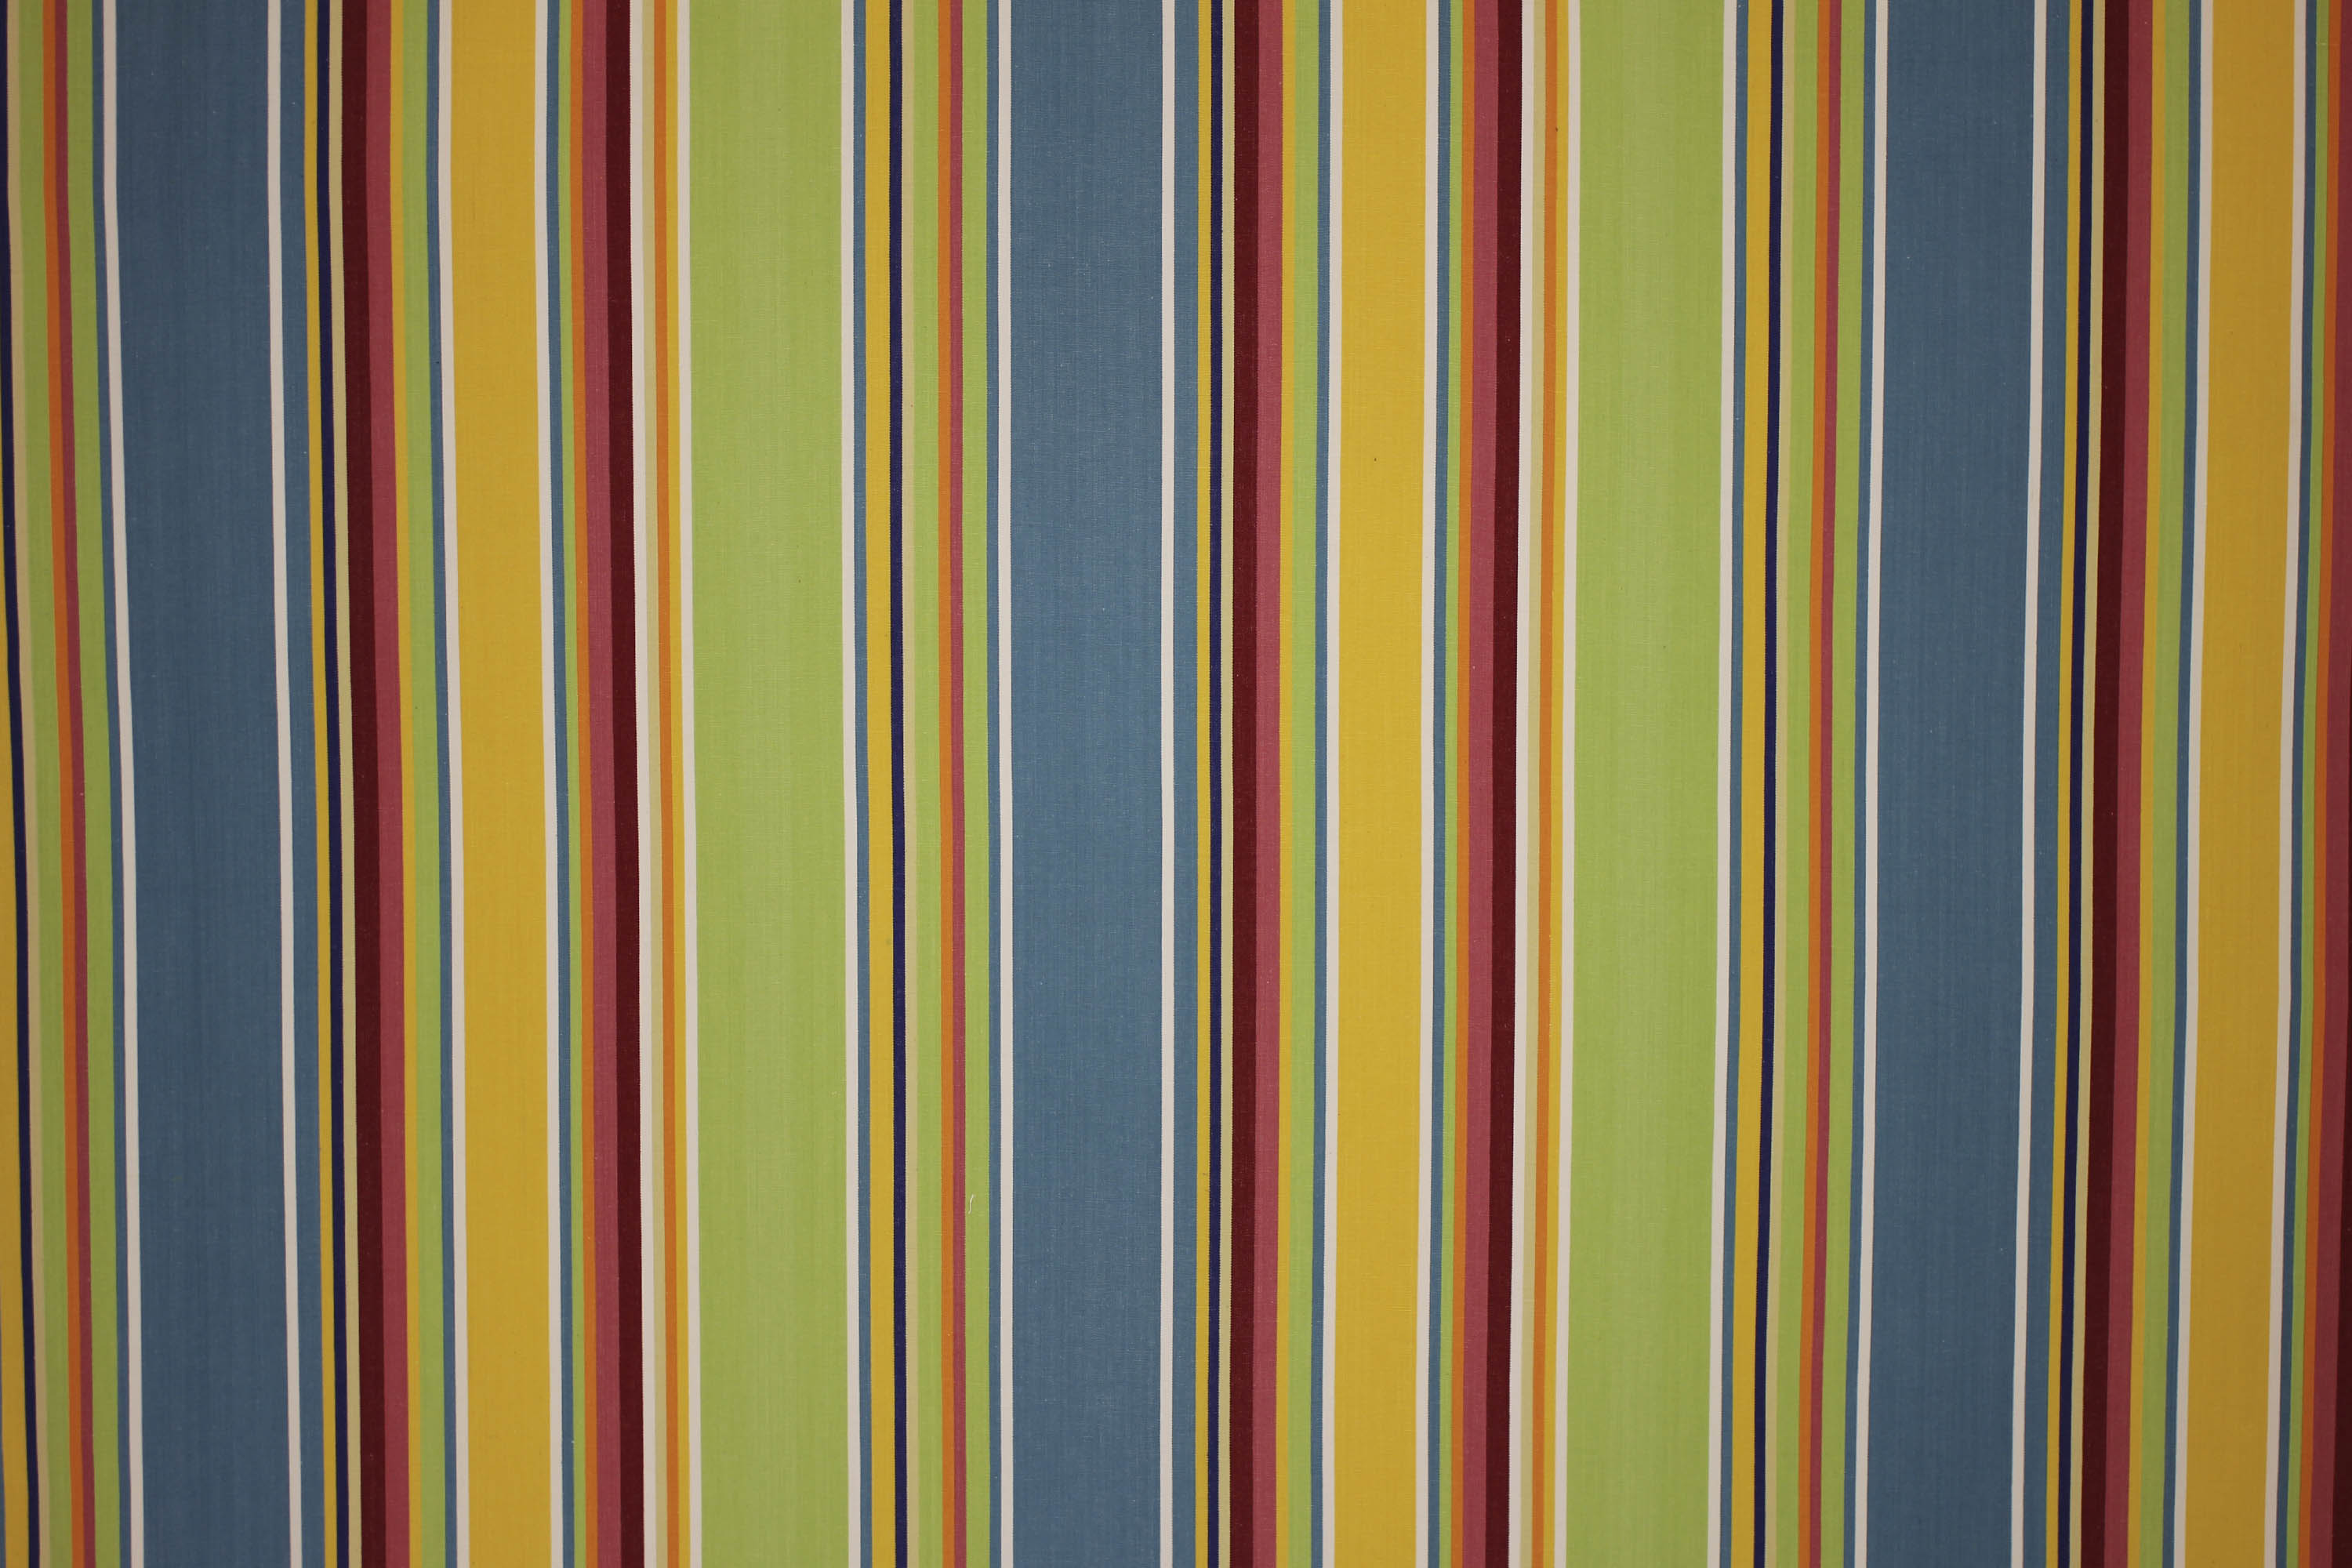 Wipe Clean Fabrics | Water Repellent Fabrics | Striped Coated Fabrics Yellow, Green, Blue